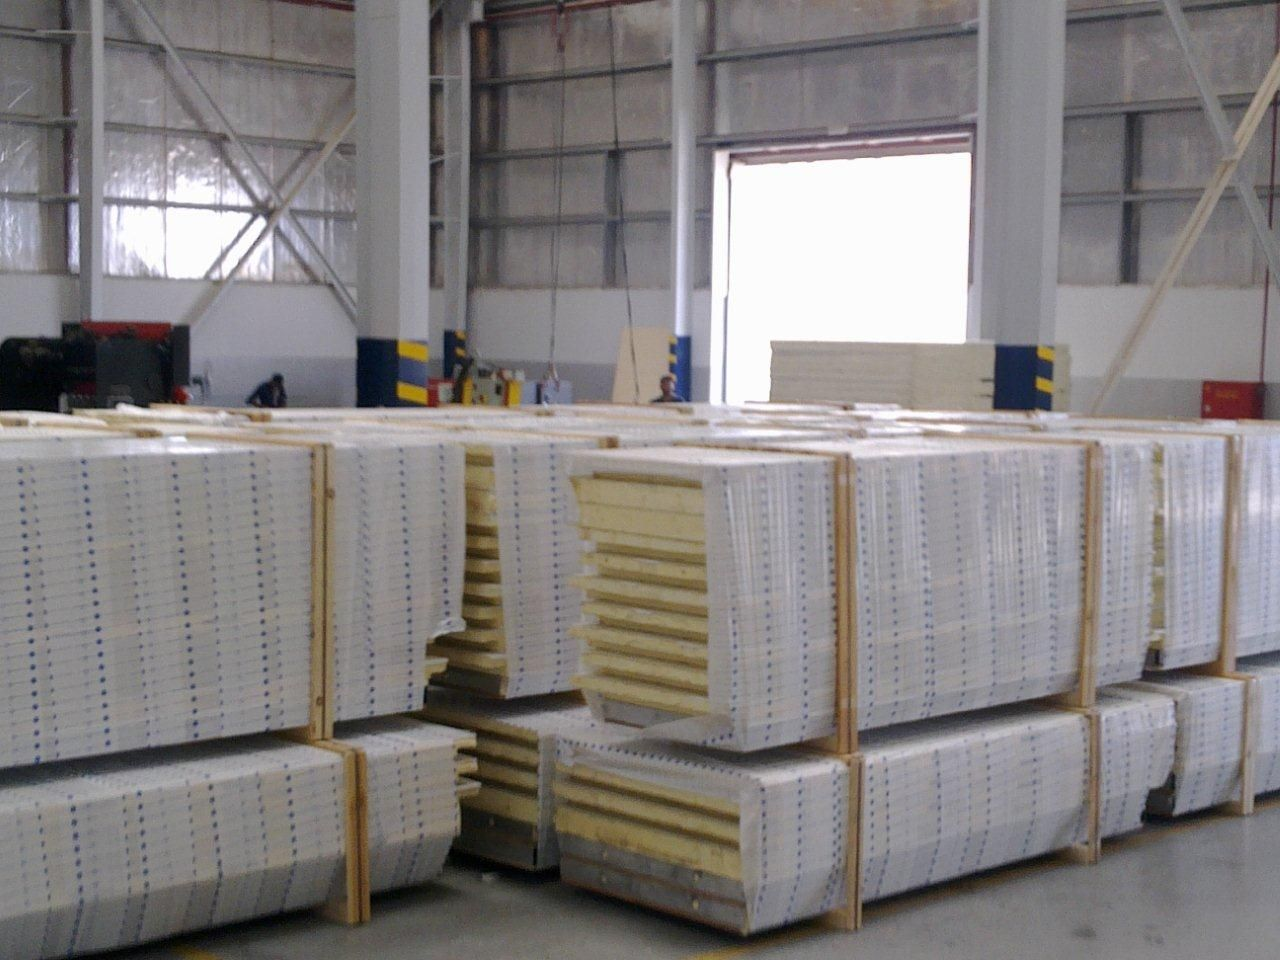 Sandwichpanels By Intergraded Industries 2i Offers Wide Range Of Puf Insulatedpanels For The Various Applications S Roof Cladding Insulated Panels Cladding